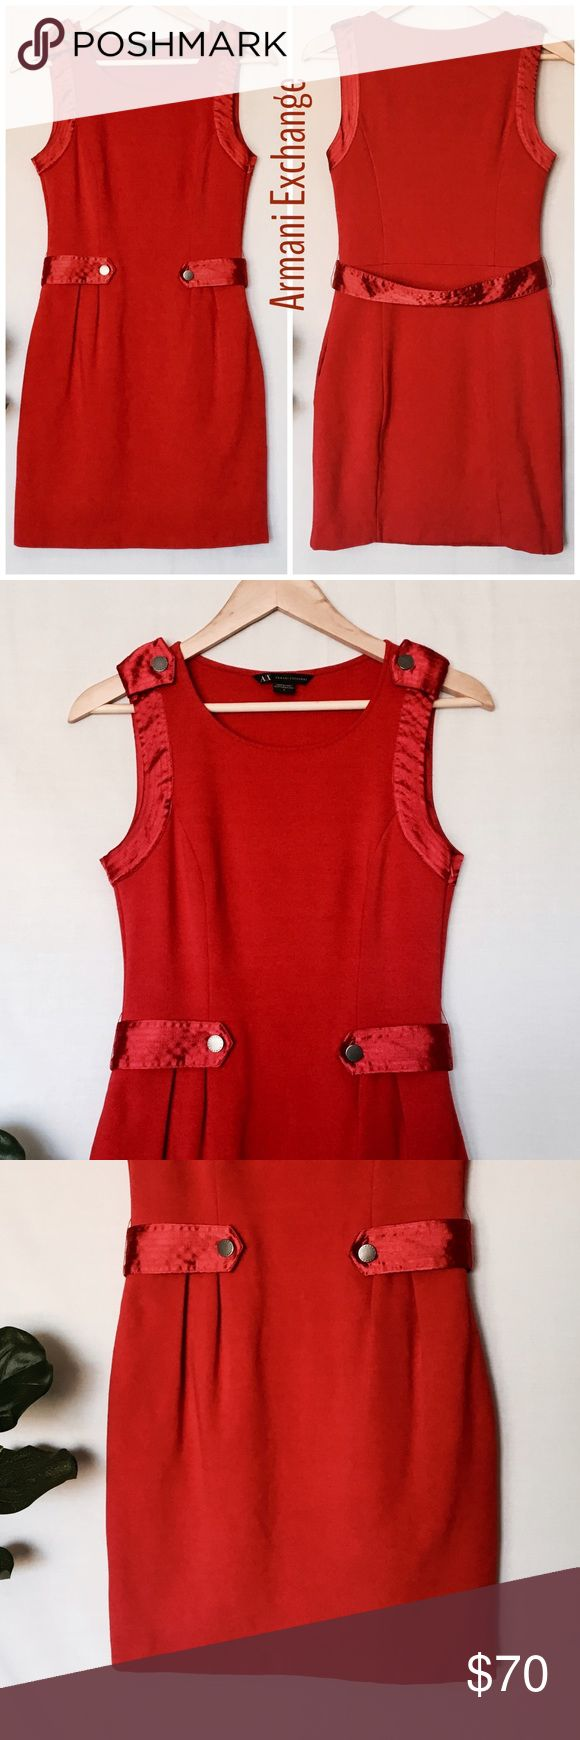 Armani Exchange Red Sheath Dress Size: 6 Armani Exchange Sheath Dress  Gorgeous A/X Red dress. Nice thick comfortable material. Soft. Buttons have logo. Removable belt. Hidden side zipper and pockets. Perfect for a wedding or nice dinner.  Material: 68% rayon 20% nylon 4% spandex.  *** Please note lining has been cut off but dress is thick so it's not see thru.   Measurements:  Underarm to underarm: 15 inches  waist: 26 inches Hip: 34 inches Length: 33 inches  Thank you for looking! Check…